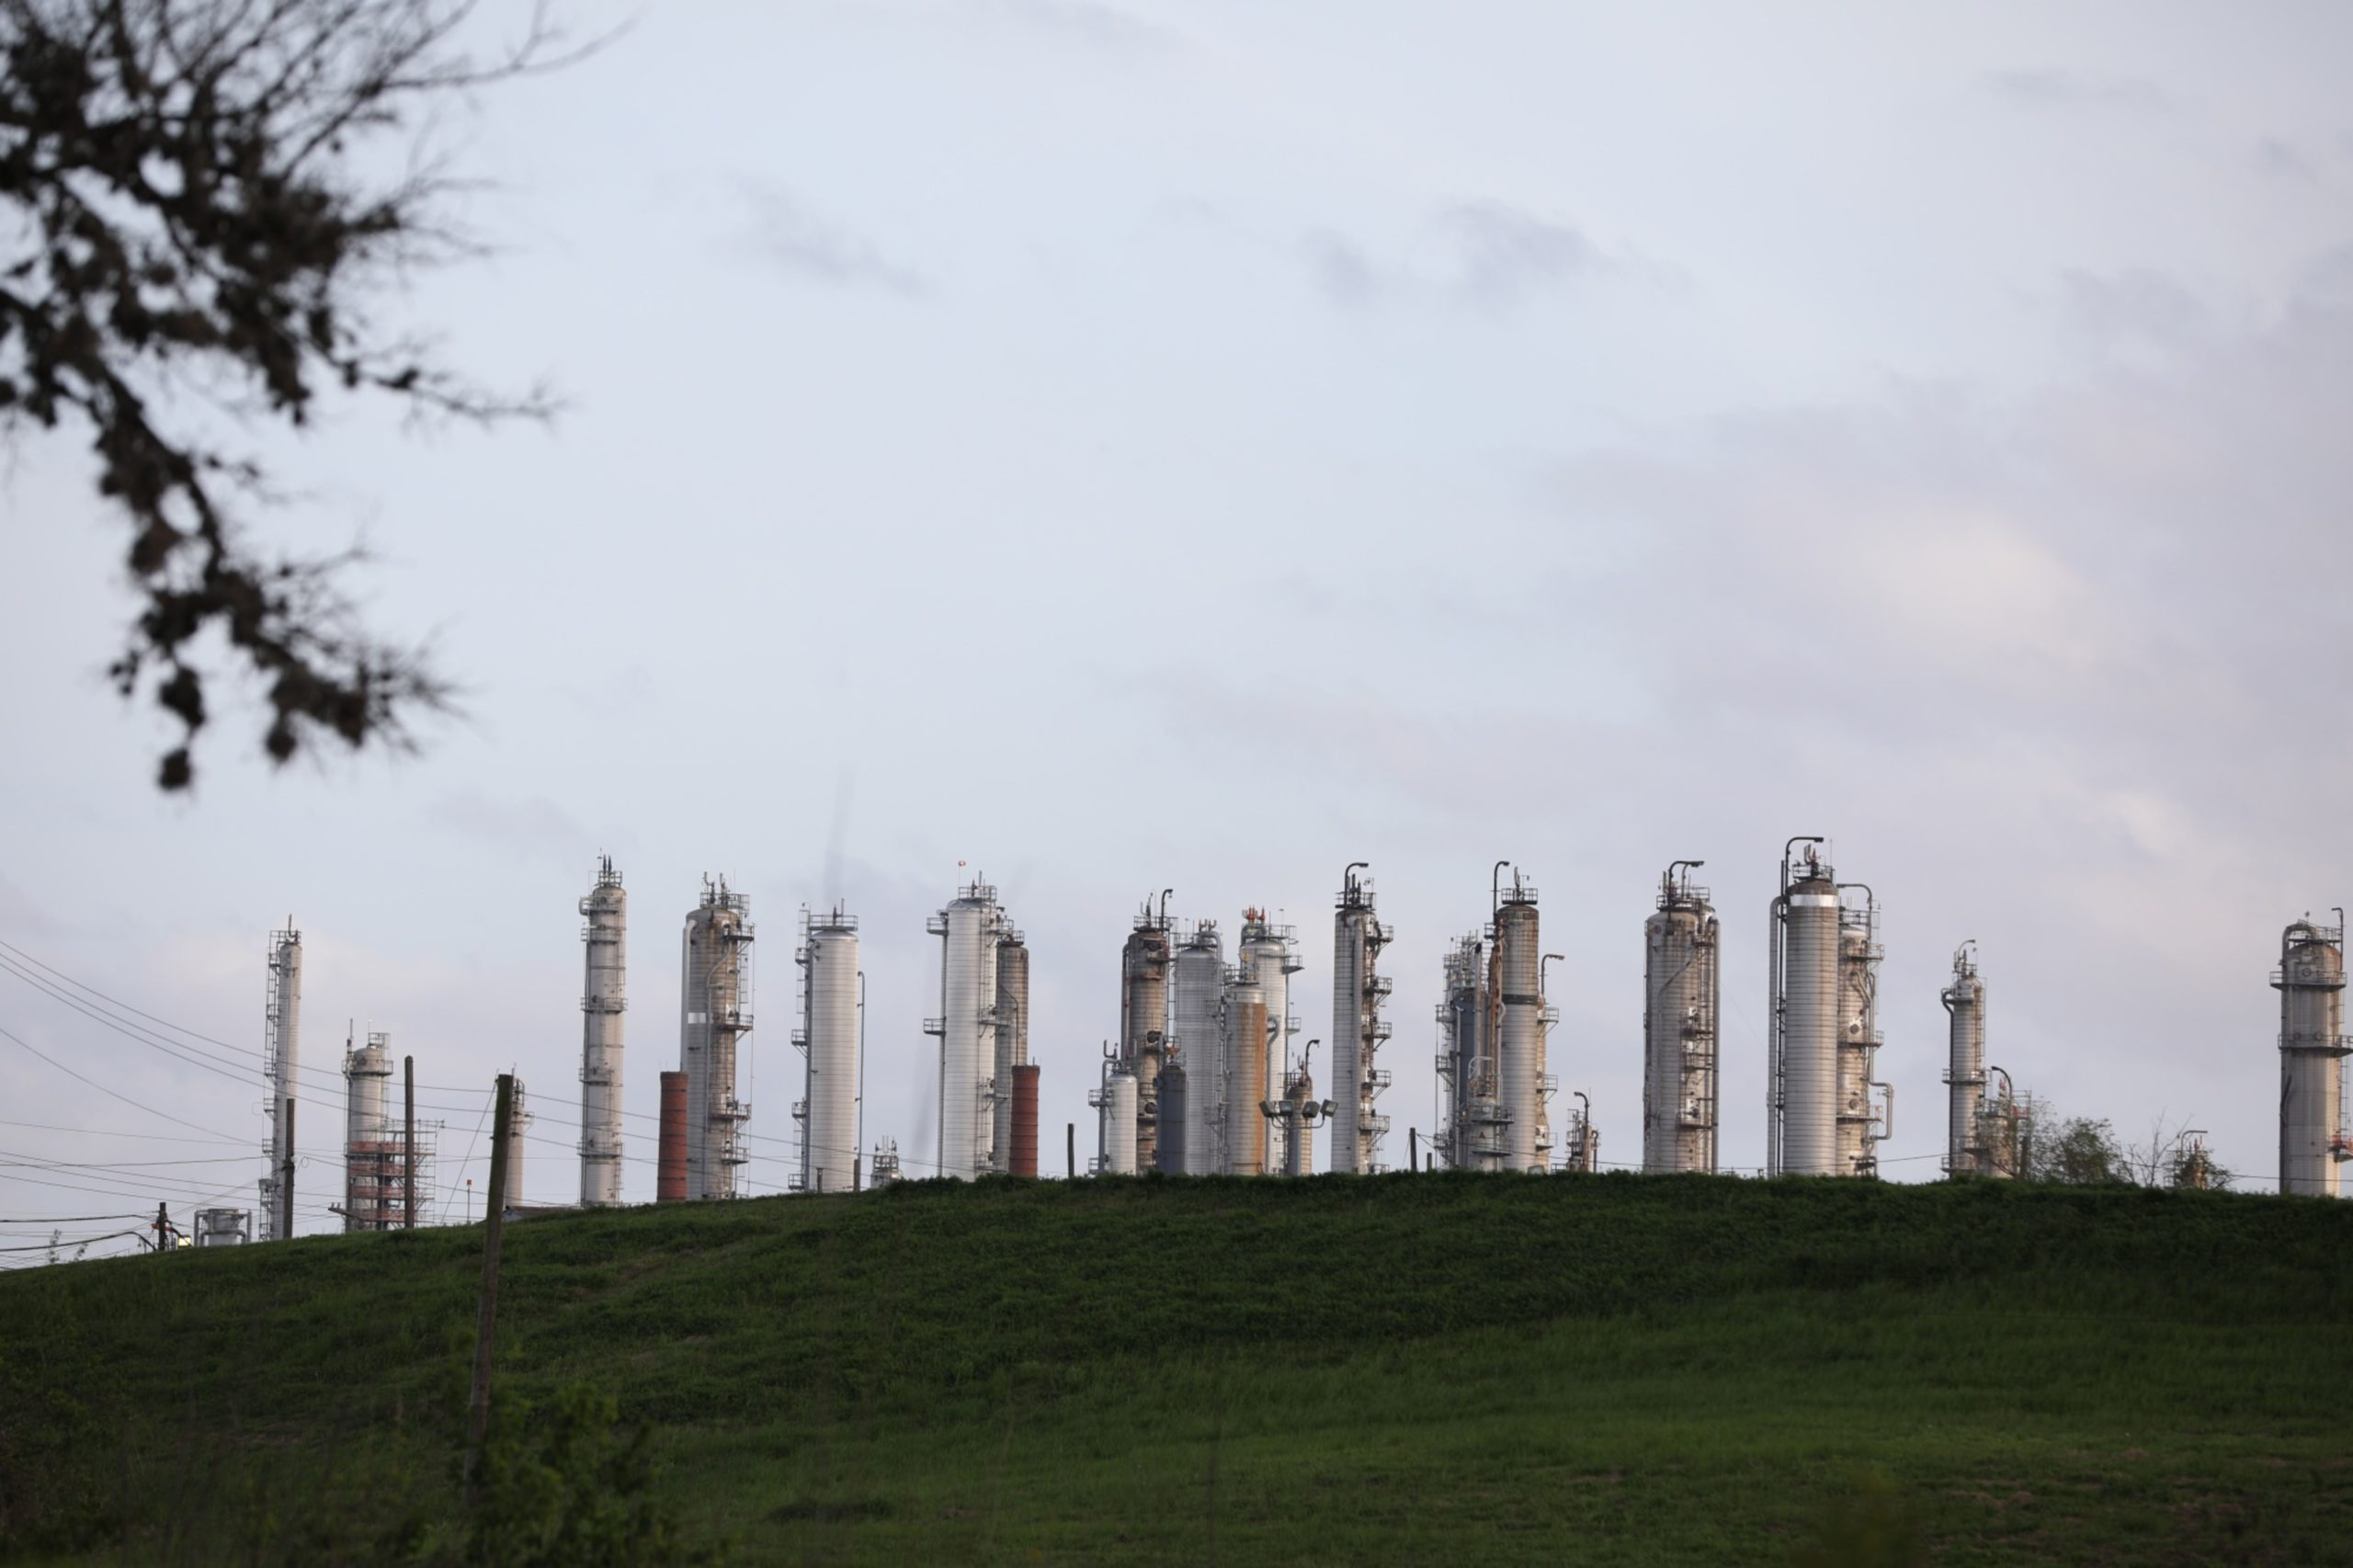 More refineries are likely to close down in 2021-23 as capacity expands more quickly than demand, despite a healthy gasoline outlook, BofA has said.